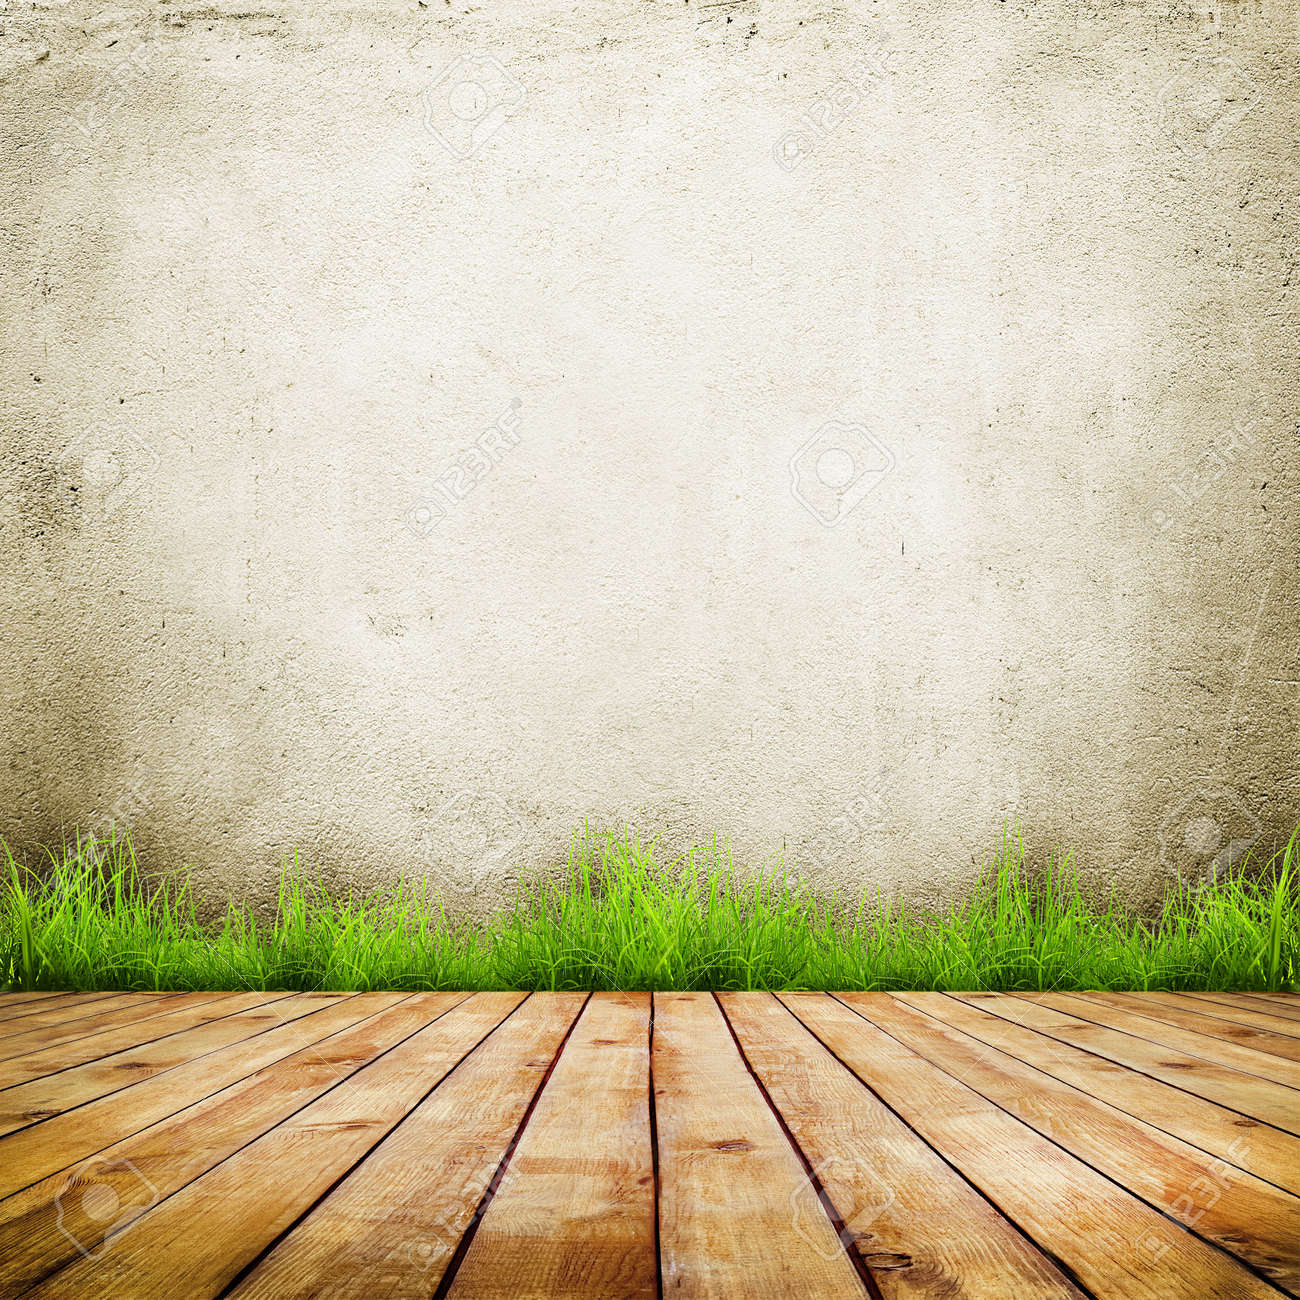 Old Wall And Green Grass On Wood Floor Background Stock Photo 1300x1300